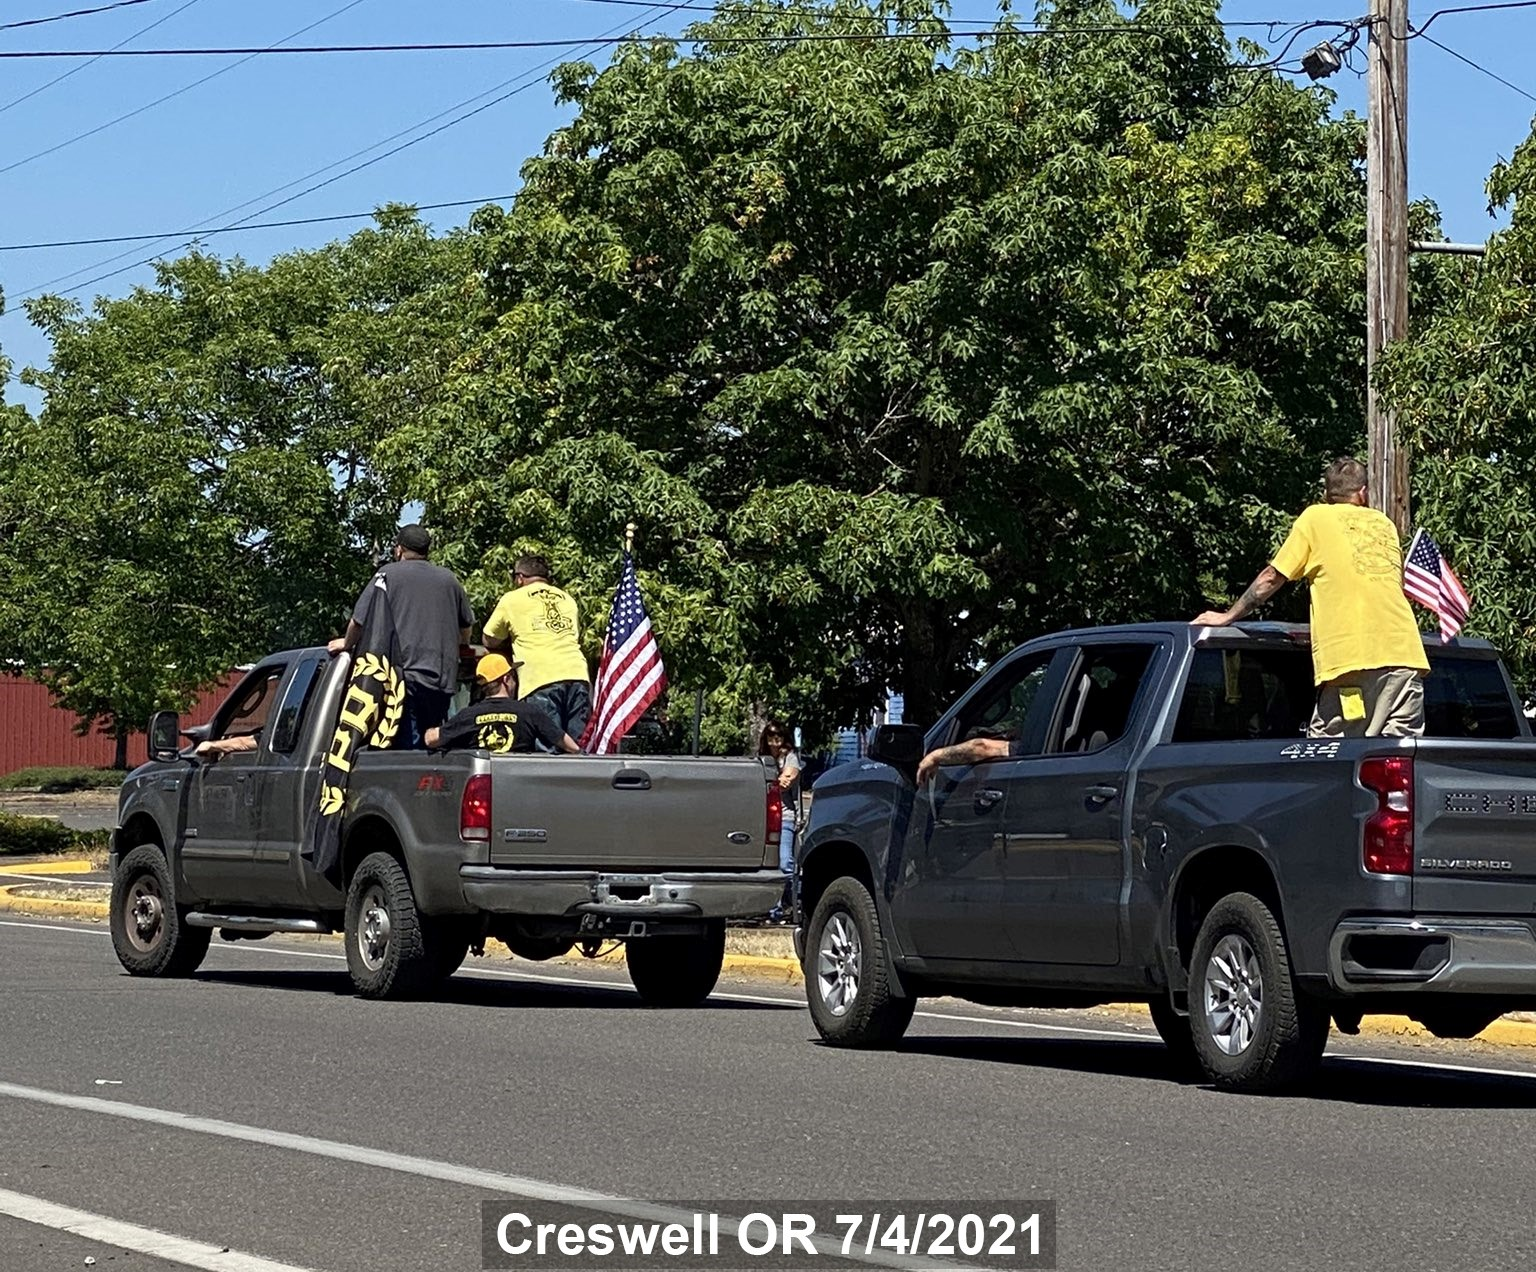 Proud Boys vehicles in the 4th of July parade